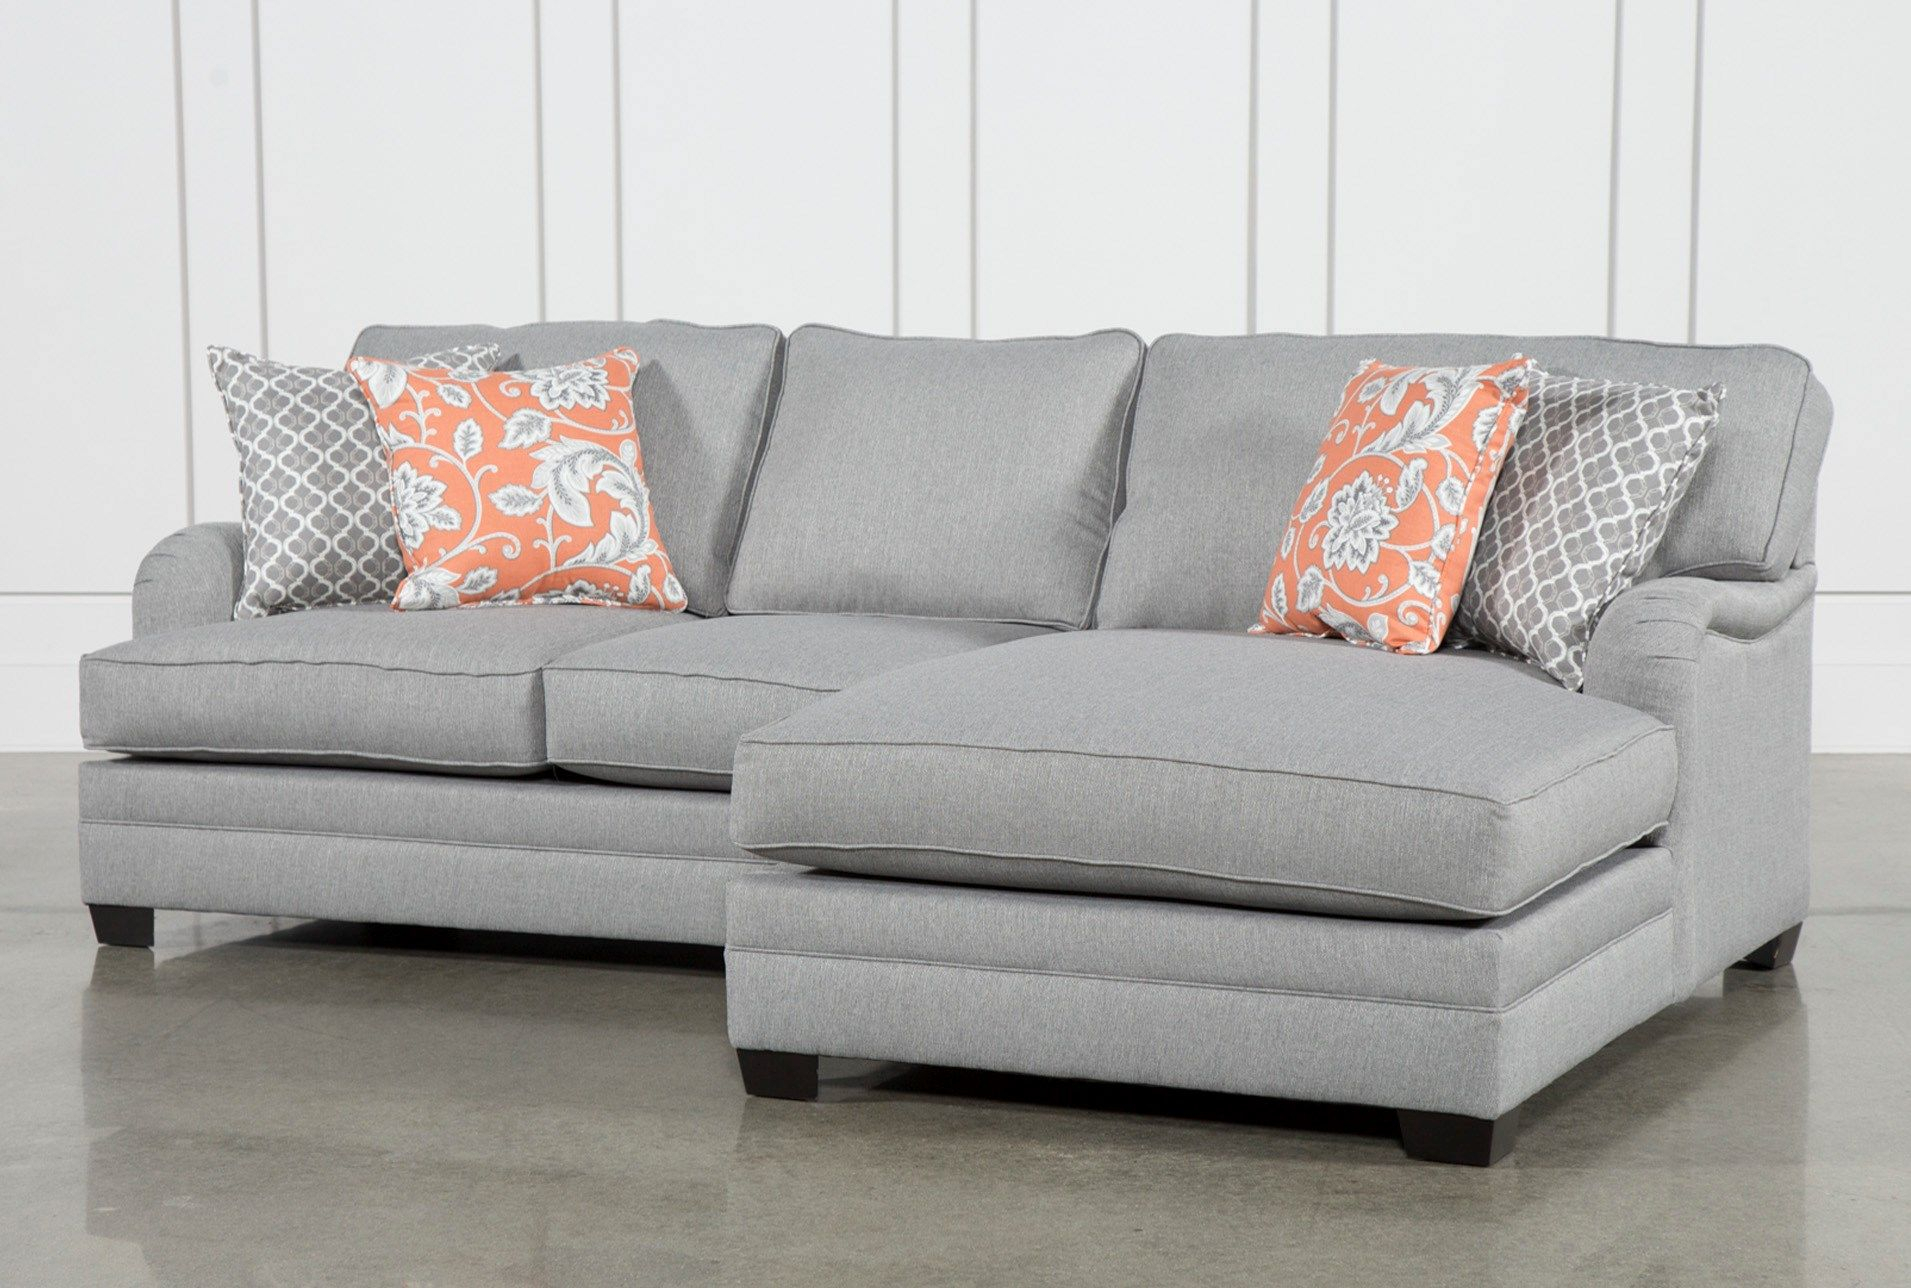 Marissa 2 Piece Sectional W/raf Chaise In 2018 | For The Home With Marissa Sofa Chairs (View 13 of 25)